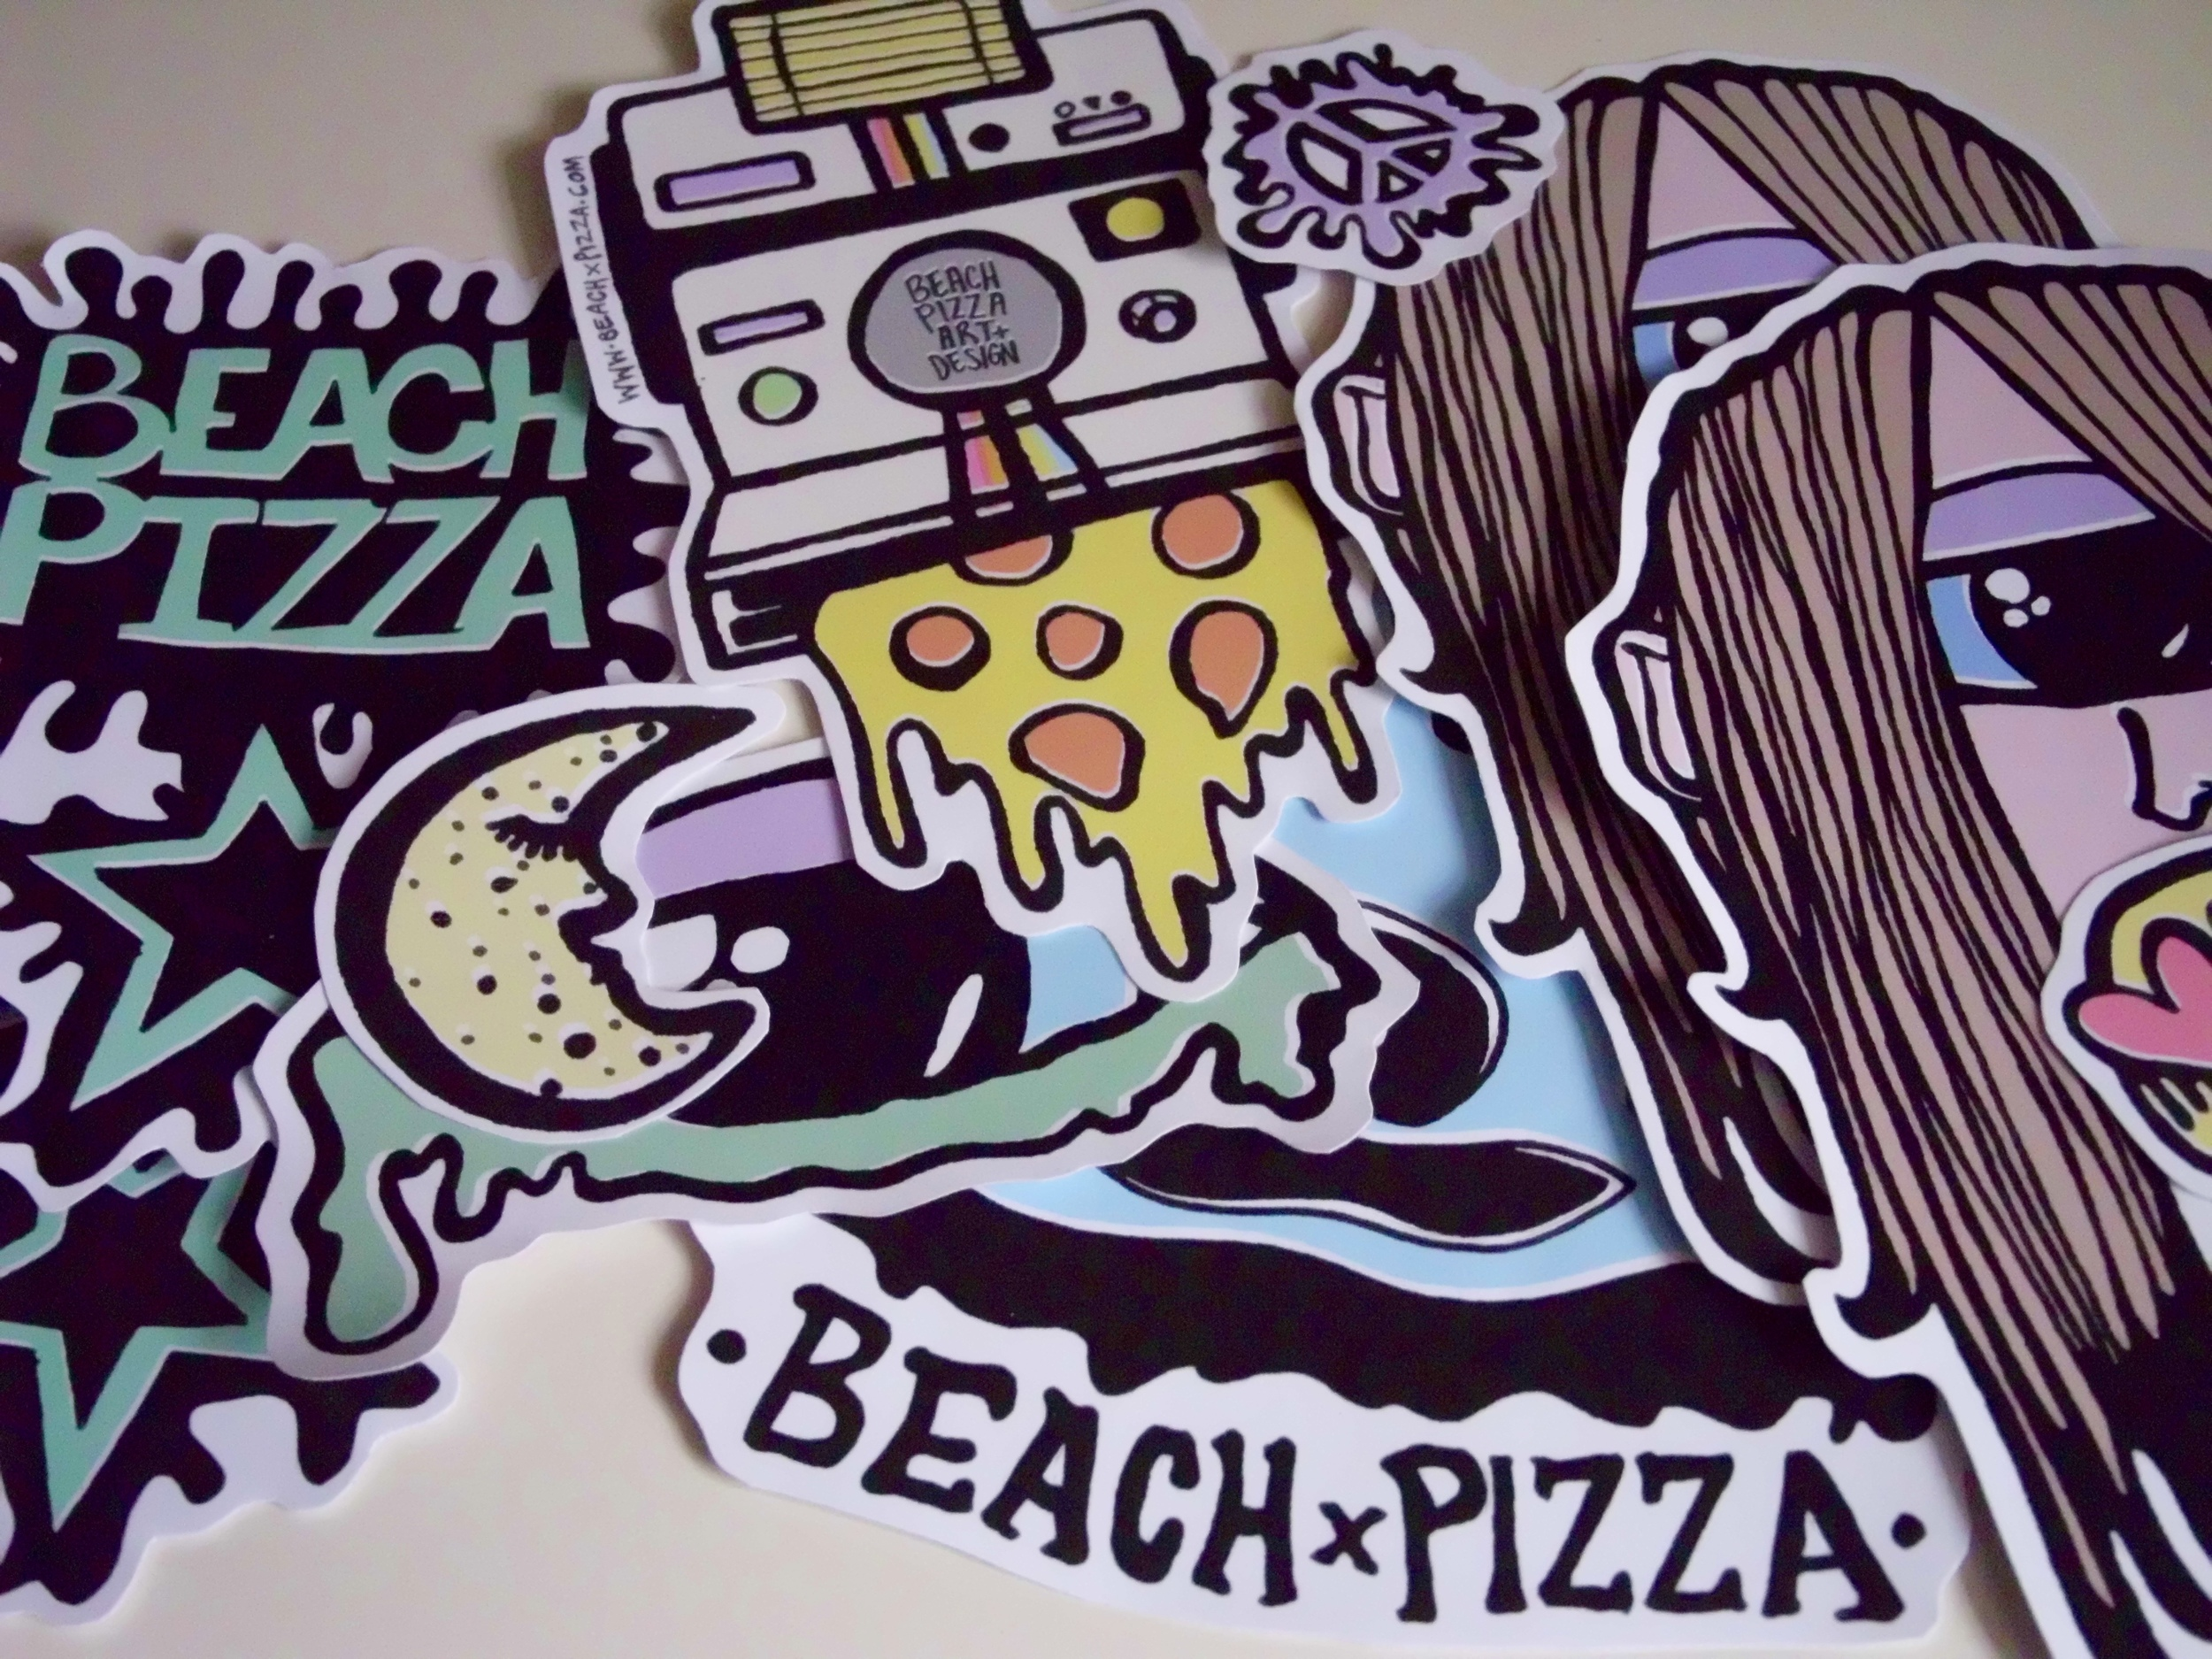 BEACHXPIZZA Stickers